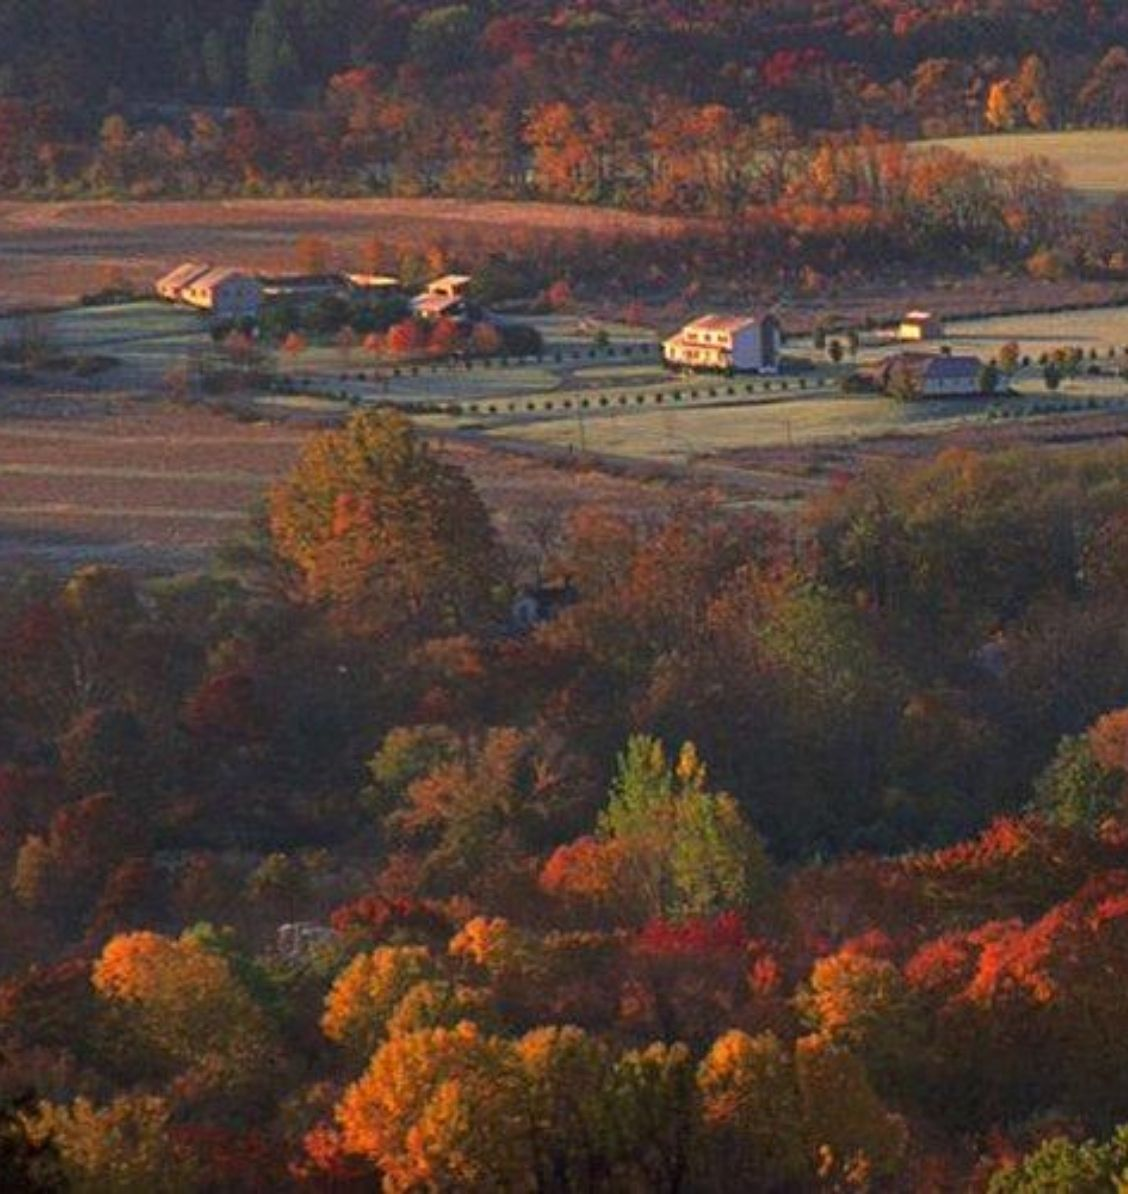 aerial view of Washington Township, NJ in the autumn